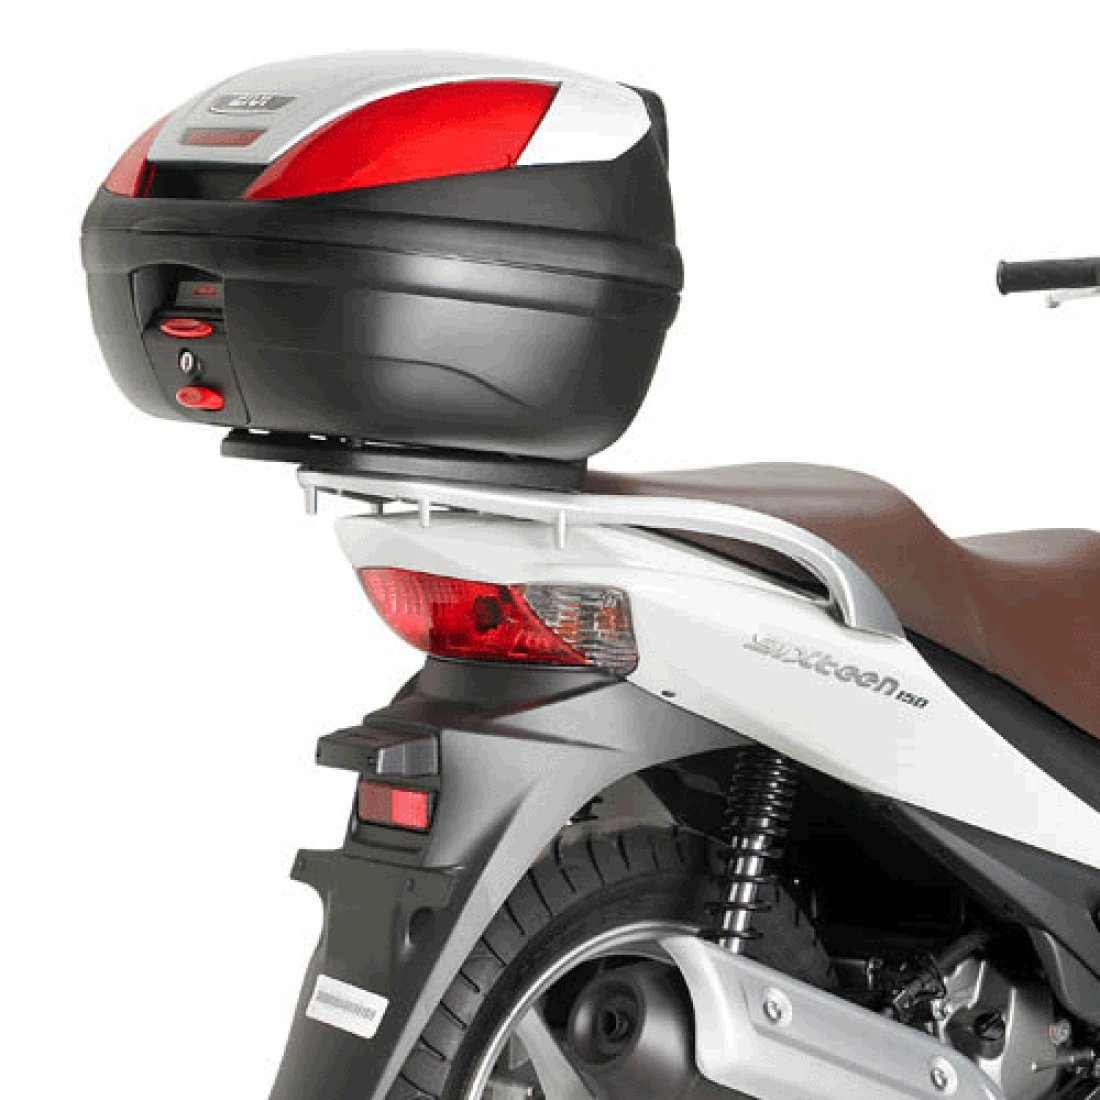 Kit de fixation GIVI 1121FZ UNICA Ss7ZvD